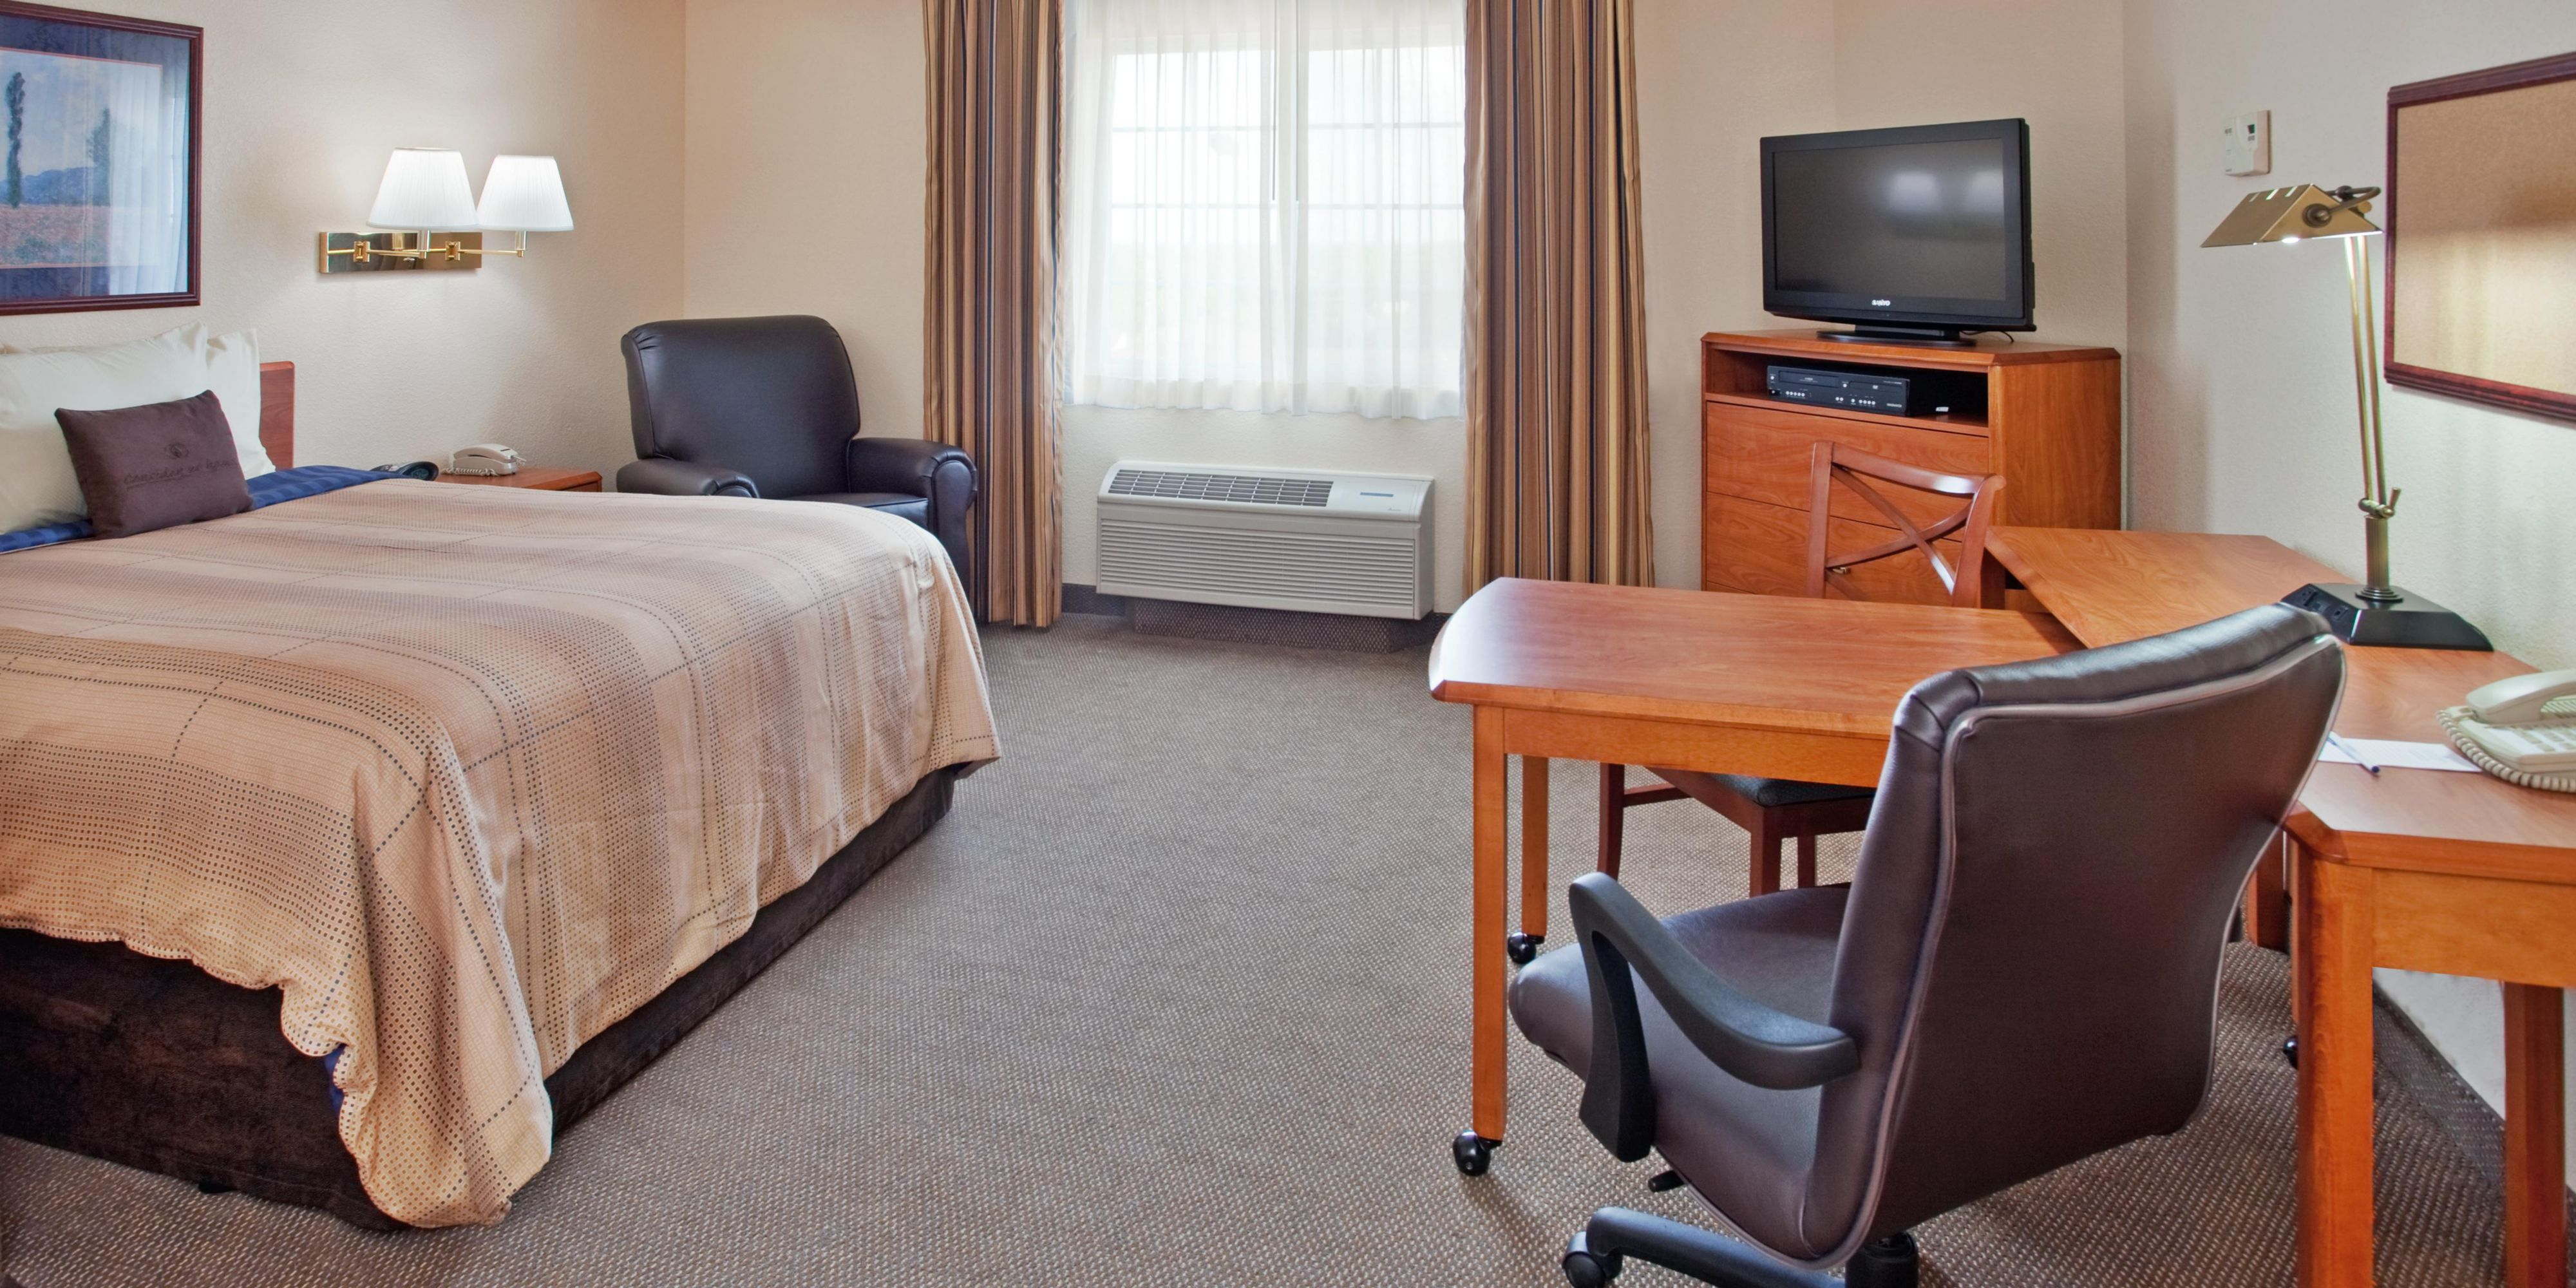 Emporia Hotels: Candlewood Suites Emporia   Extended Stay Hotel In Emporia,  Kansas